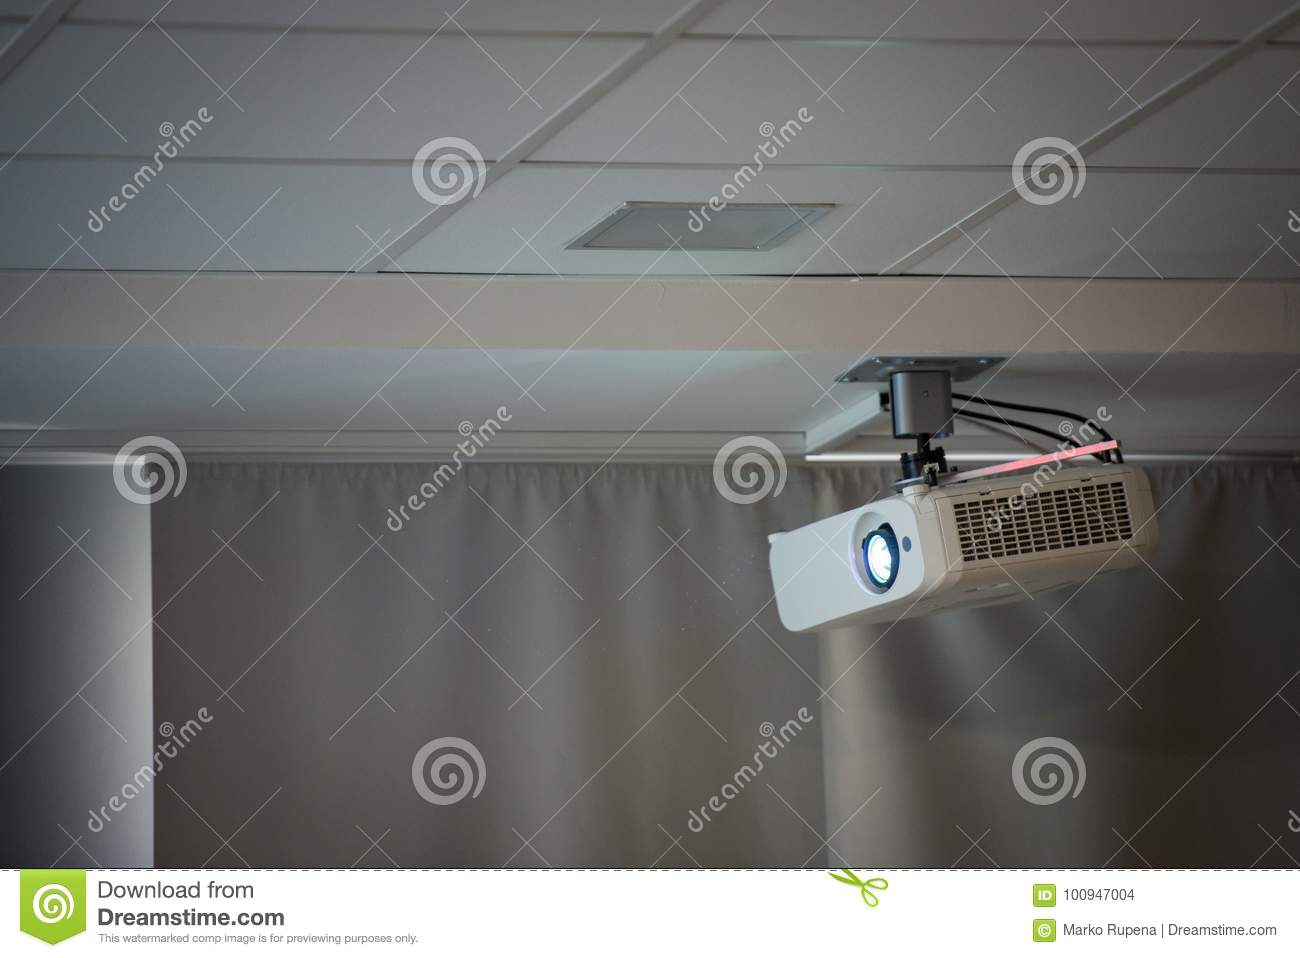 Multimedia projector on the ceiling of conference room